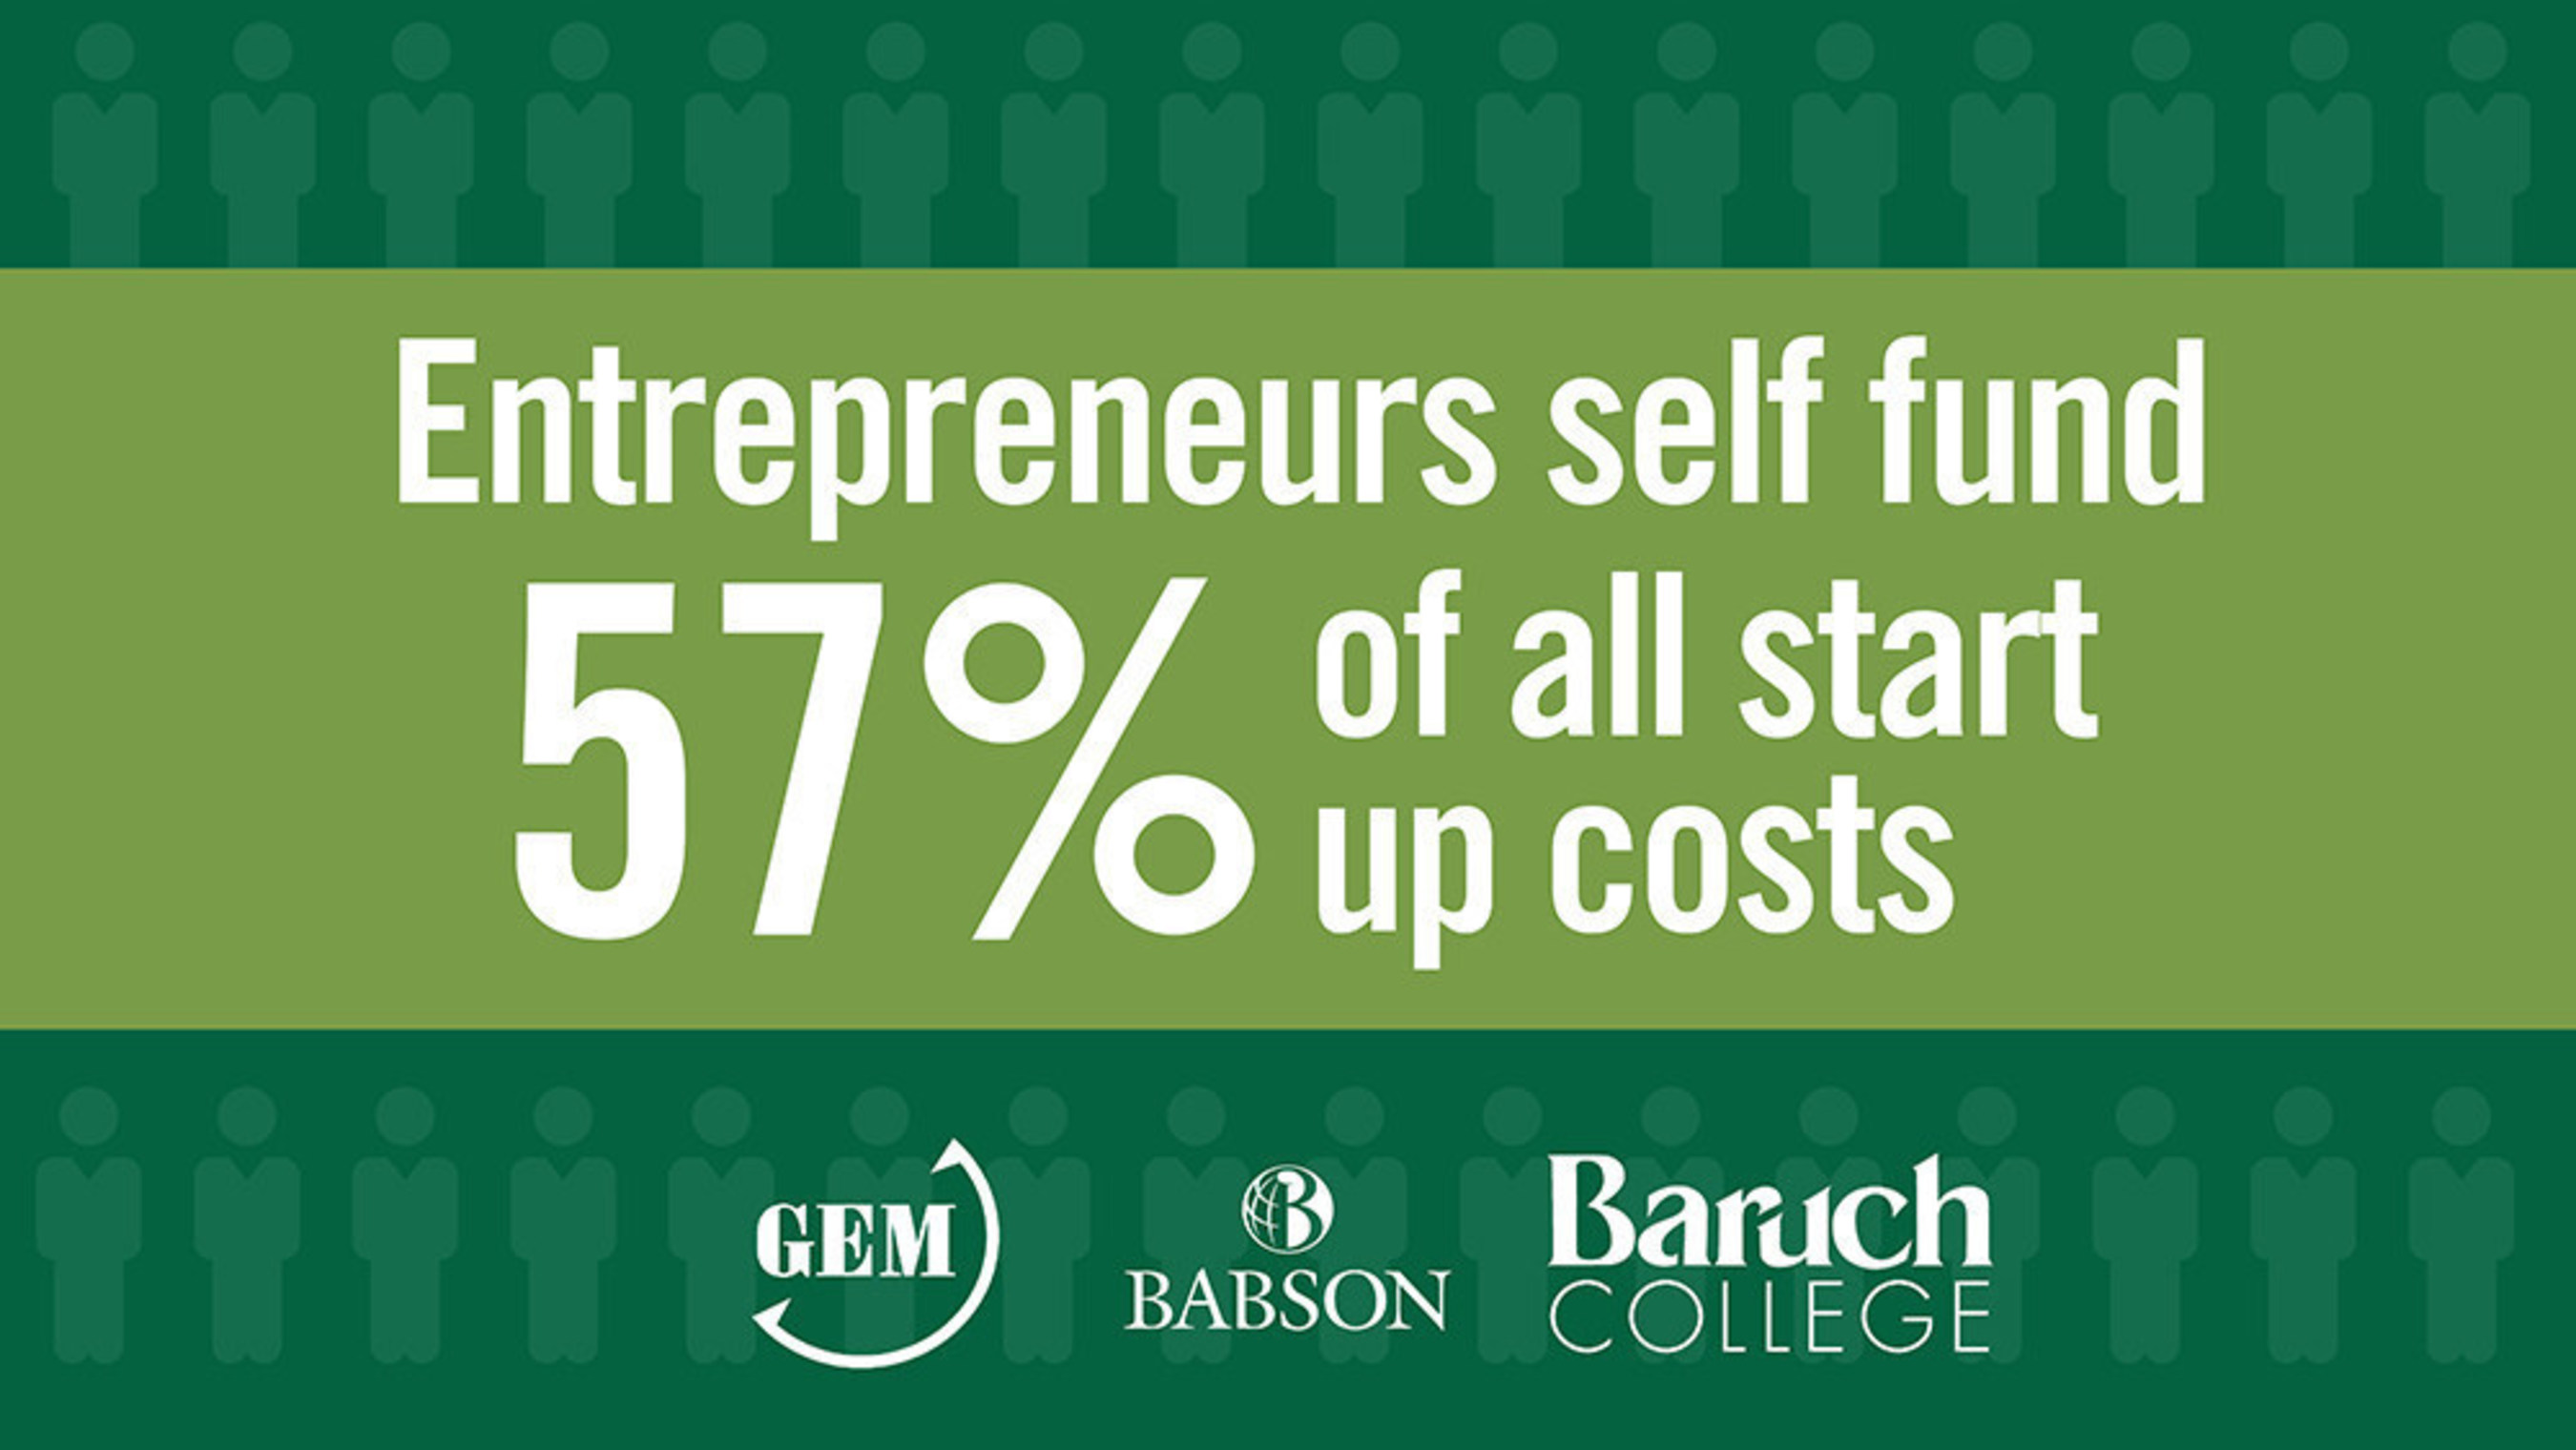 Options for funding entrepreneurial ventures are increasing in the U.S., particularly with the growth of crowdfunding and the prevalence of informal investors, but entrepreneurs still depend on bootstrapping and support from family and friends to finance startups--this according to the Global Entrepreneurship Monitor (GEM) 2015 U.S. Report issued by Babson College and Baruch College.